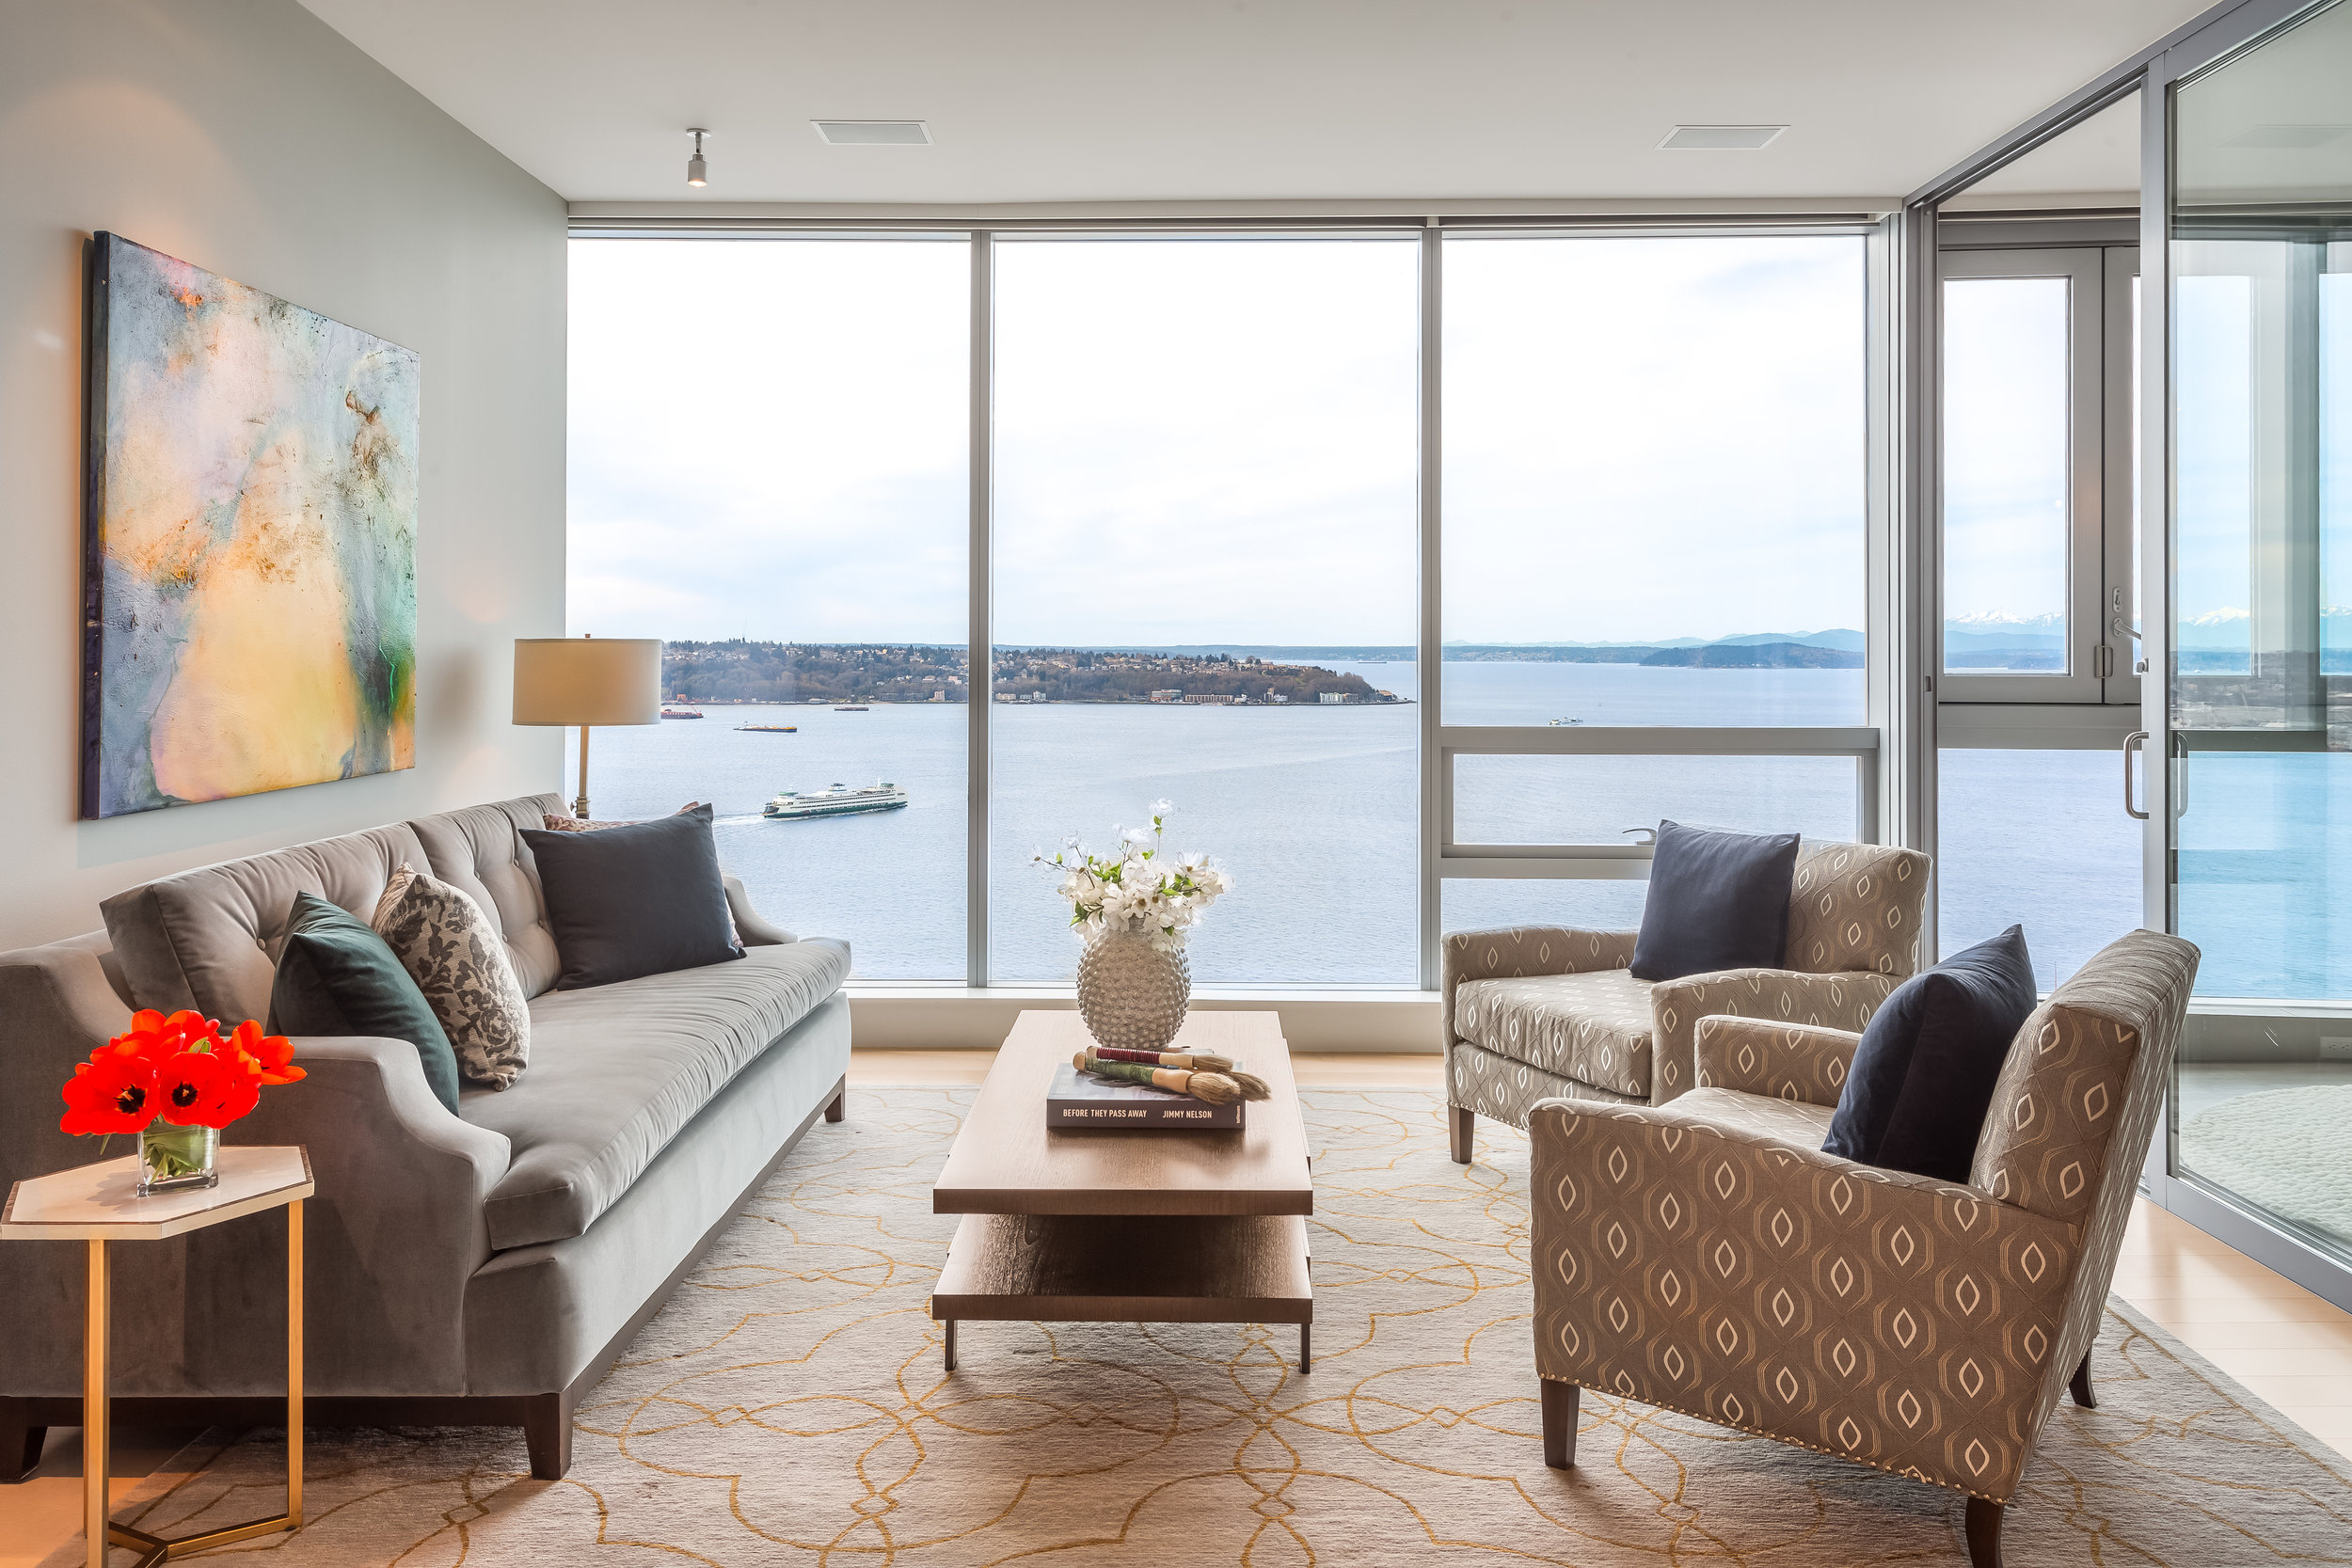 1521 2nd Ave #2804, Seattle  |  $2,900,000